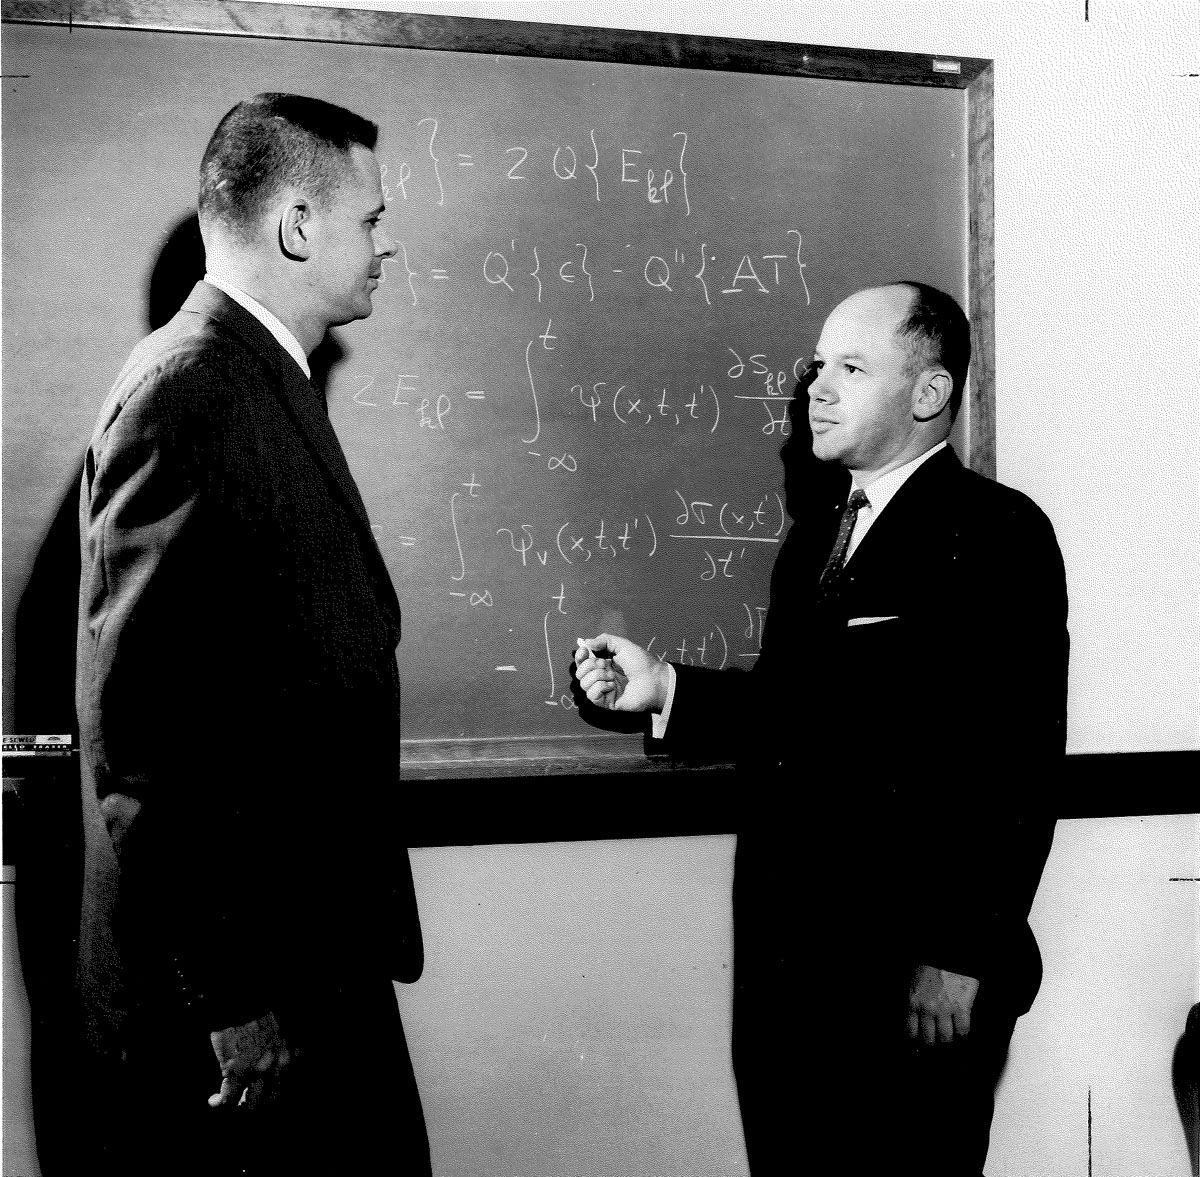 Dr. Harry Hilton, professor emeritus in Aerospace Engineering, right, with former Ph.D student Alister Fraser in 1965.